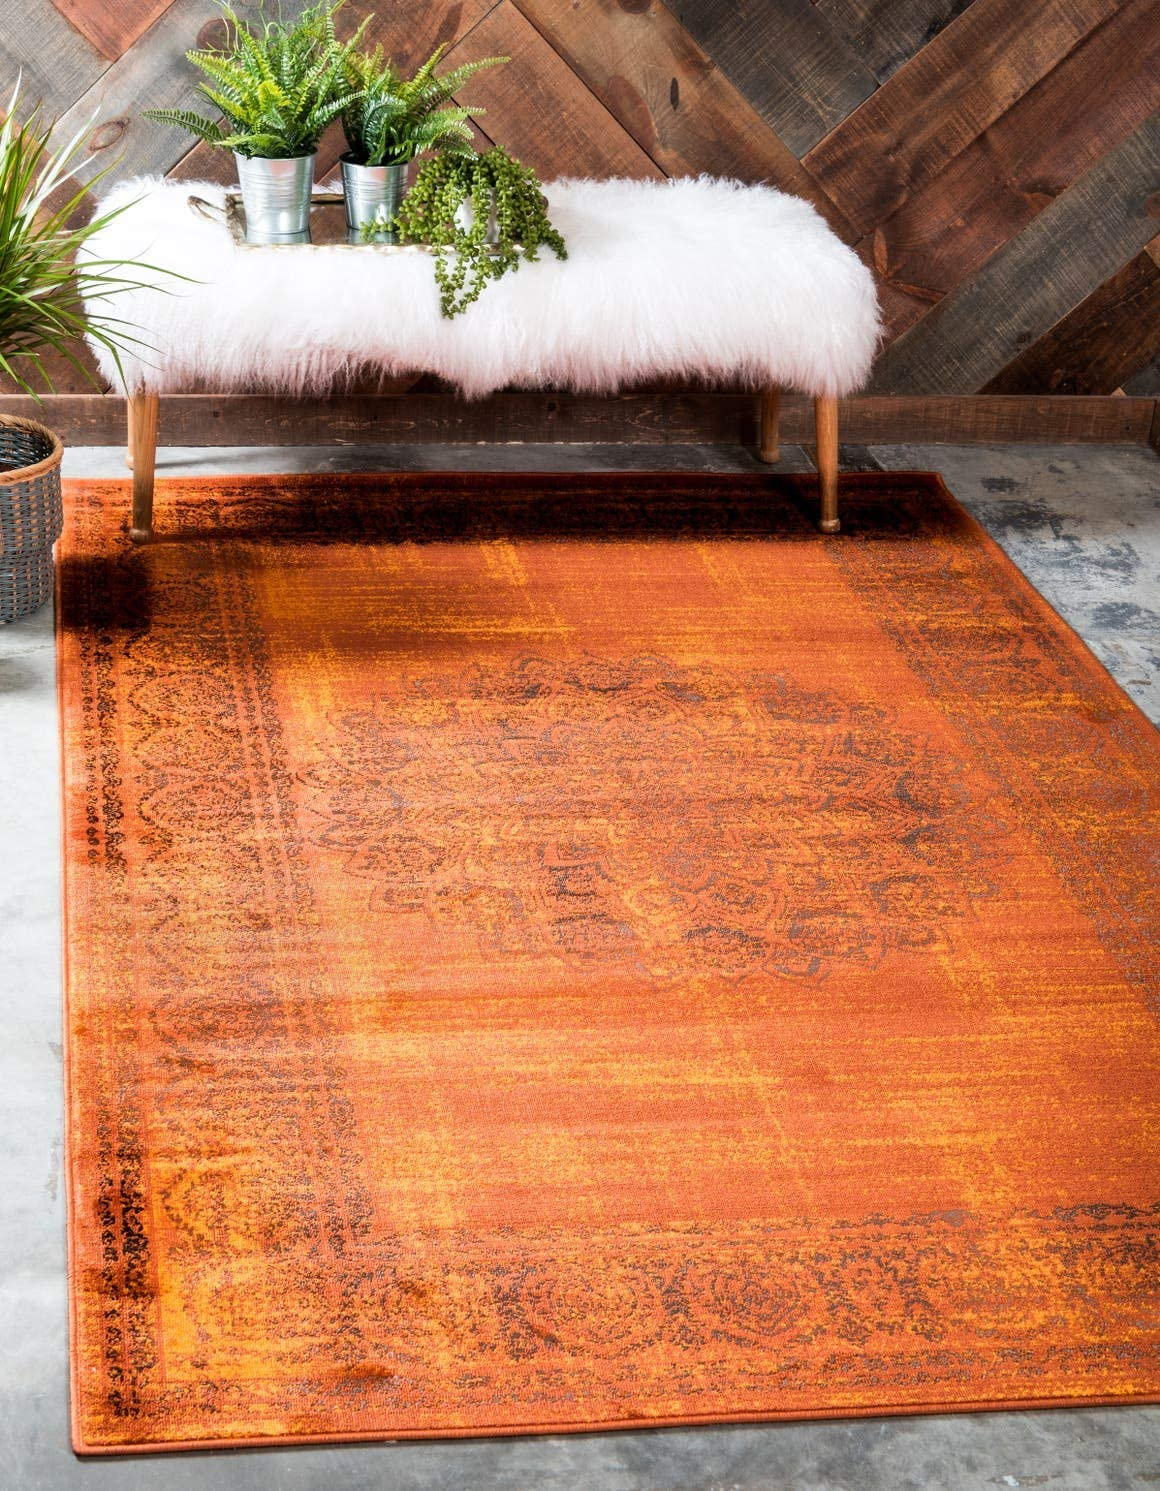 Unique Loom Imperial Collection Modern Traditional Vintage Distressed Terracotta Area Rug 13 0 x 19 8